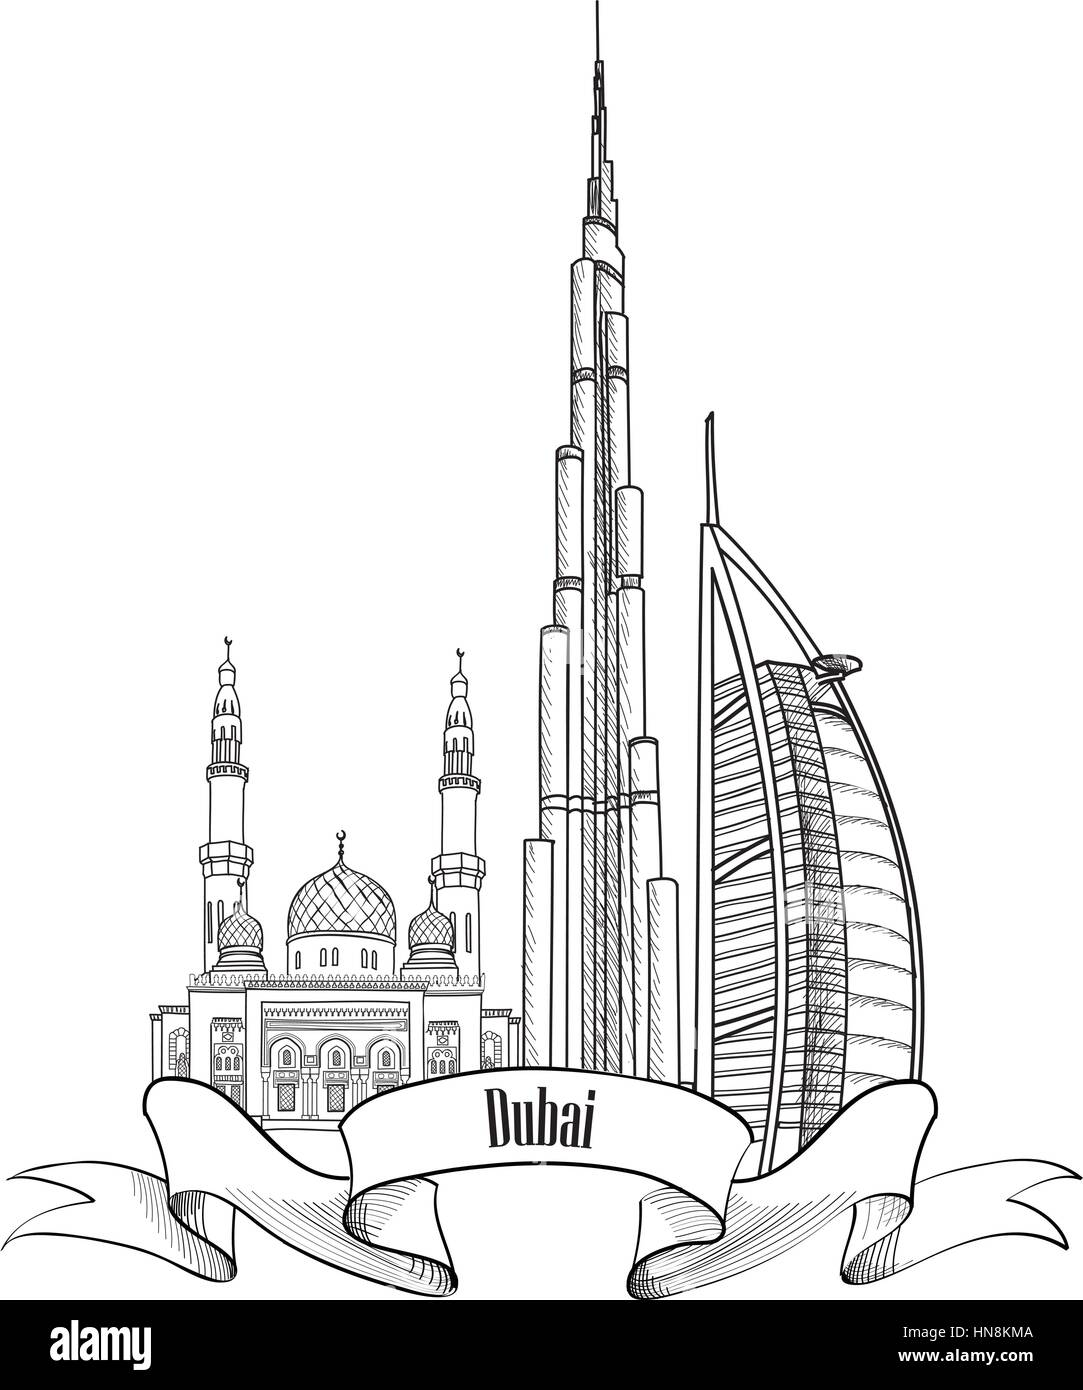 Travel UAE Symbol Dubai City Label